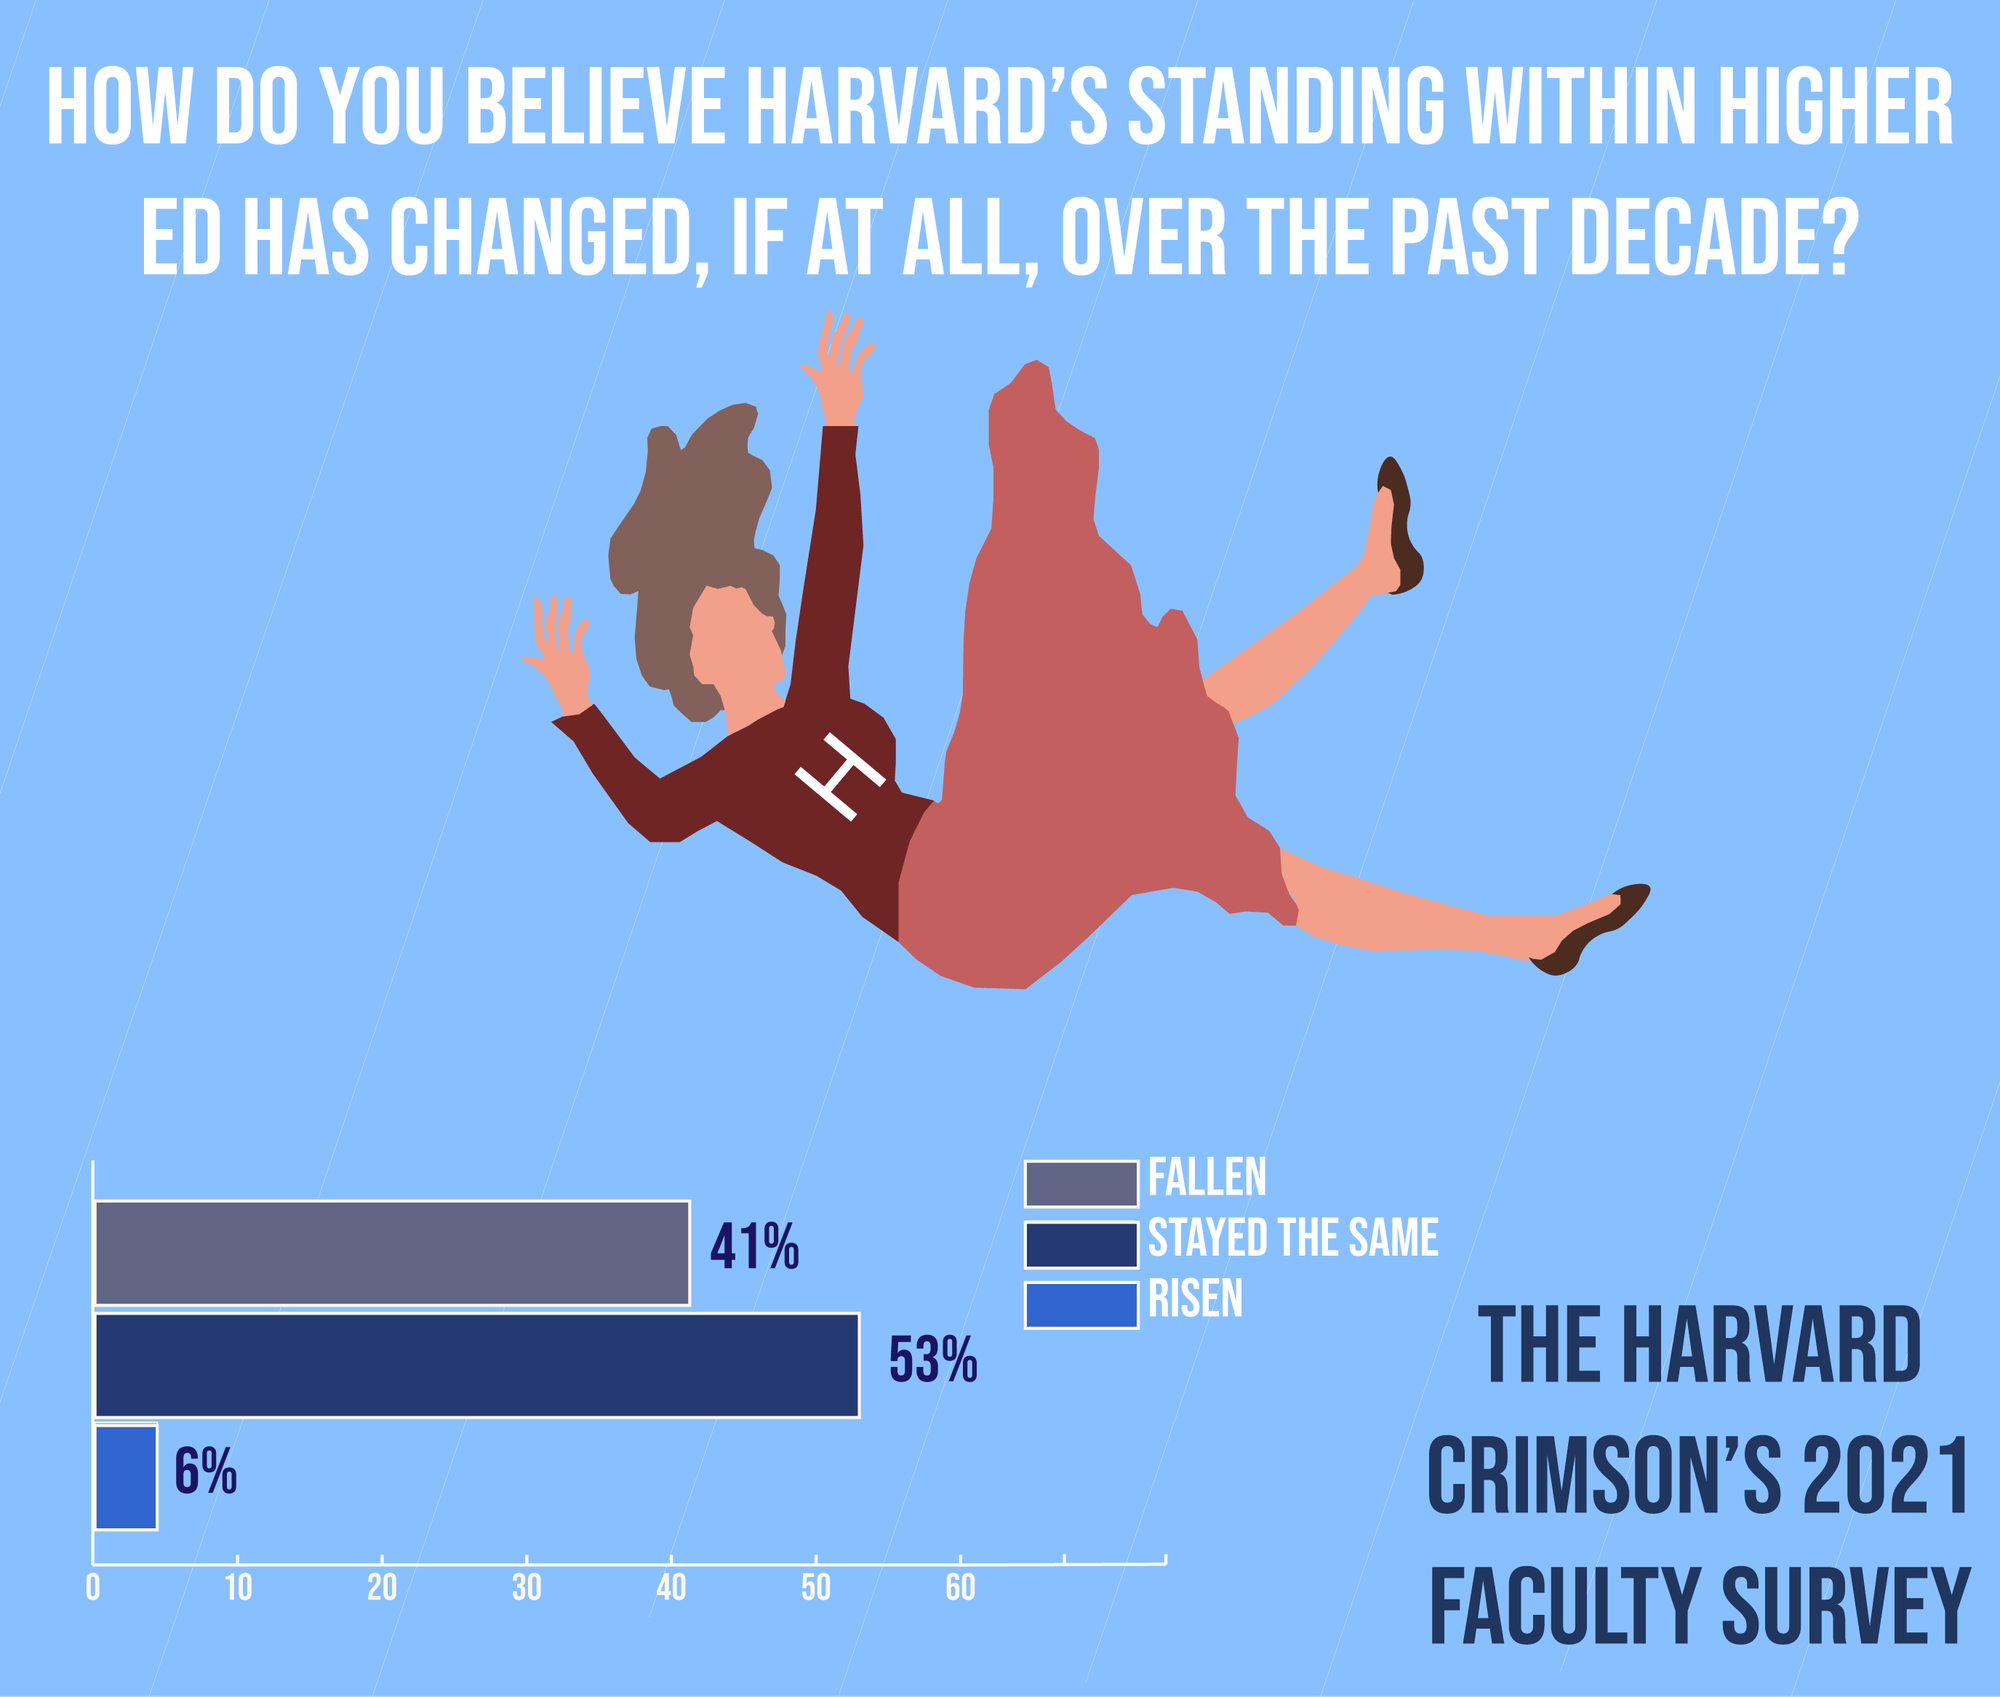 Forty Percent of Surveyed Faculty Say Harvard's Standing in Higher Ed Has Fallen   News   The Harvard Crimson